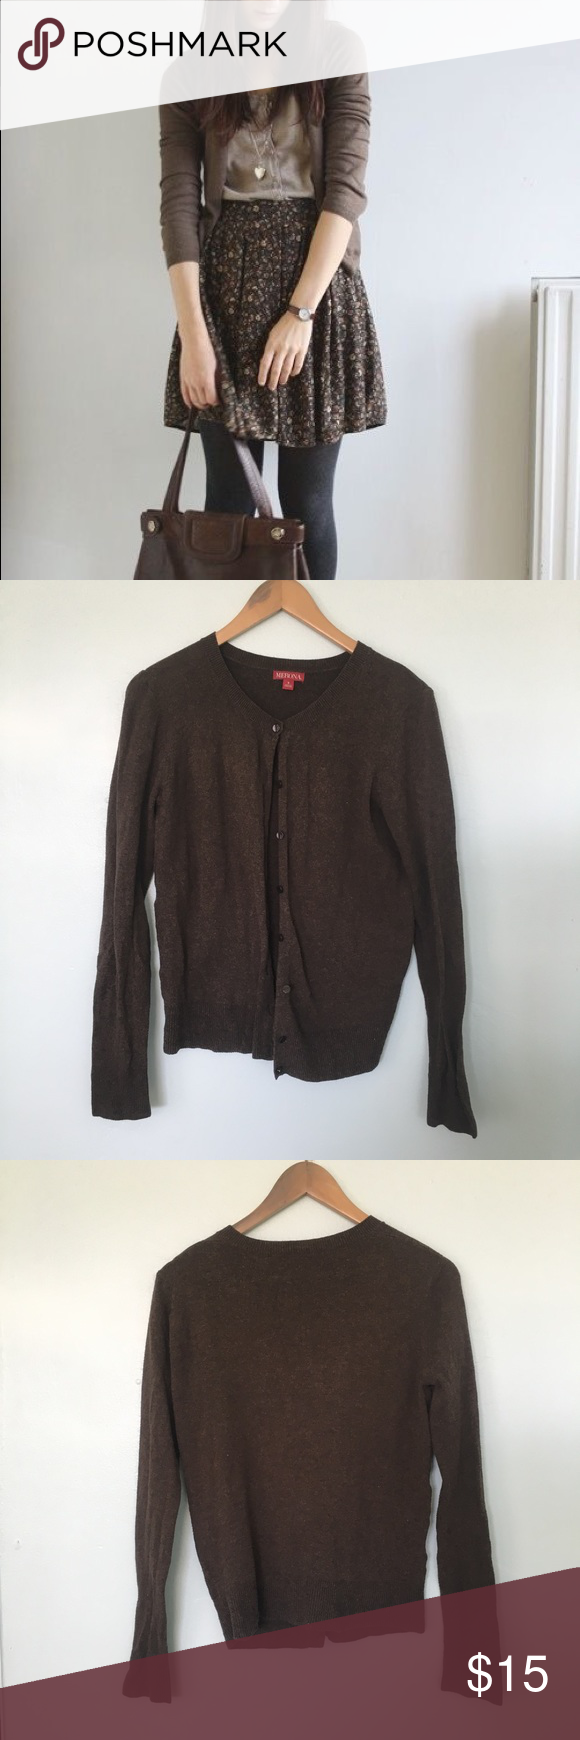 Brown Fall Cardigan Warm and cozy brown cardigan - perfect for ...